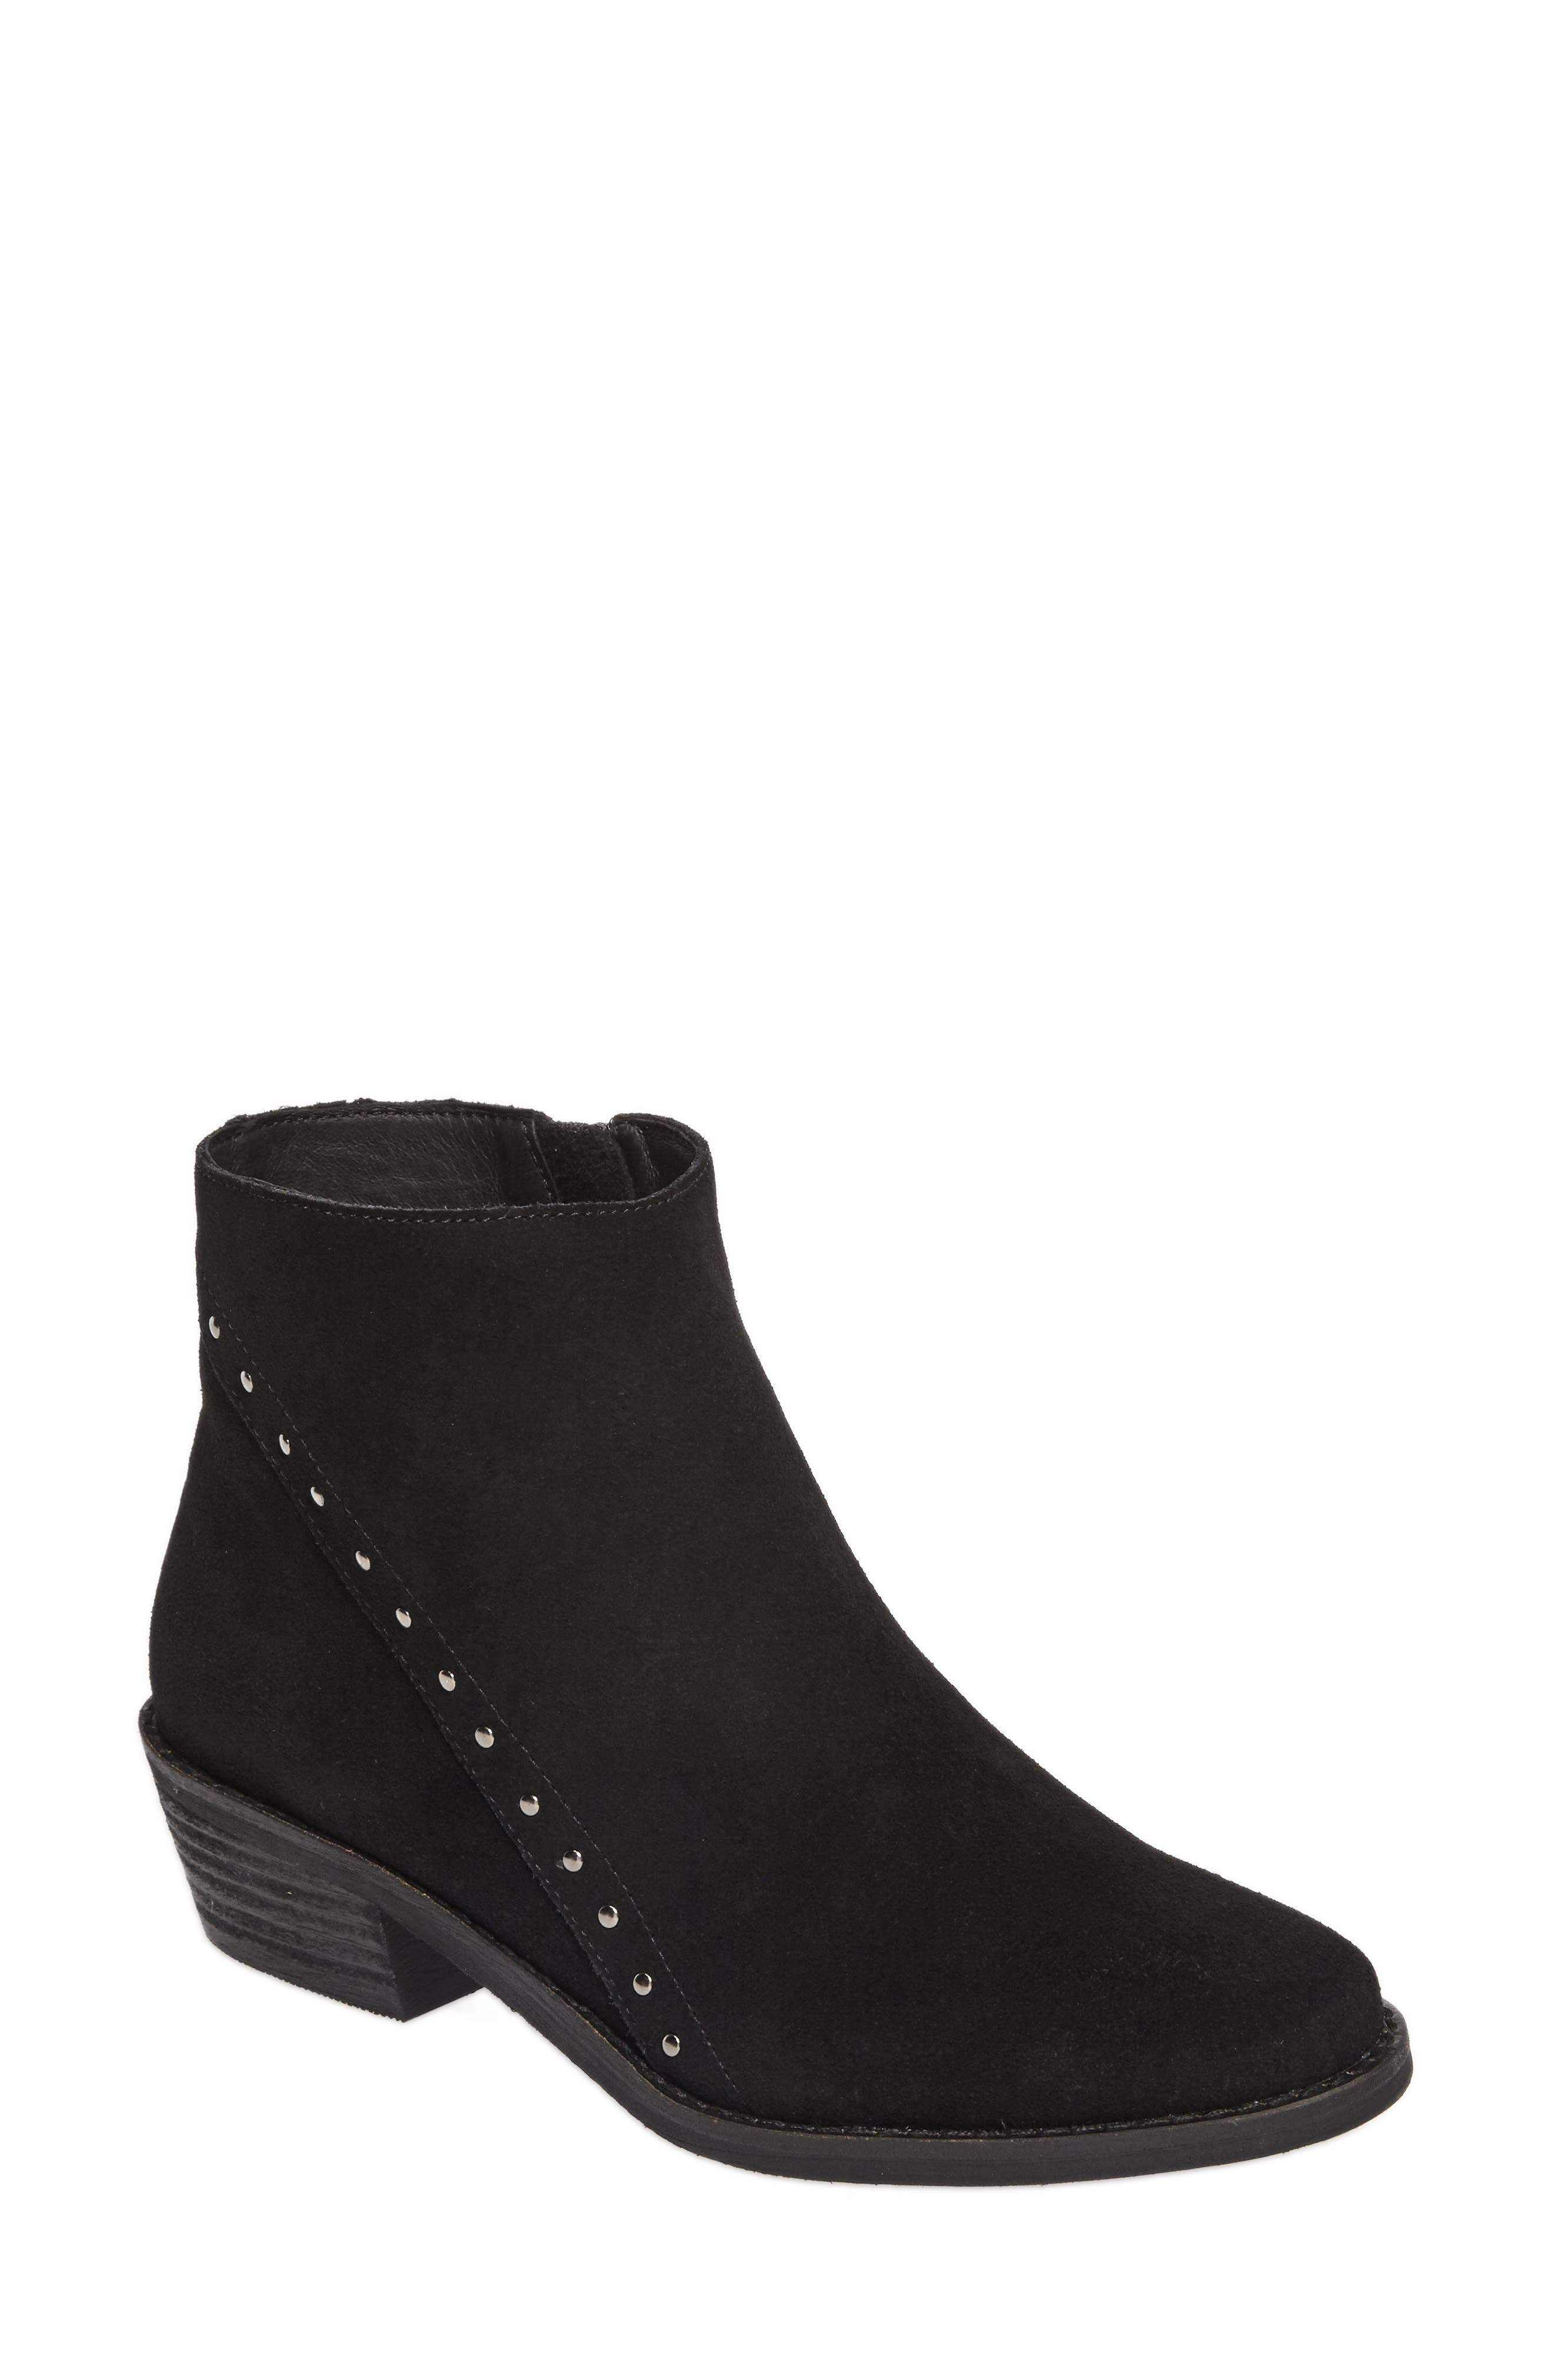 Irven Stud Bootie,                             Main thumbnail 1, color,                             Black Suede